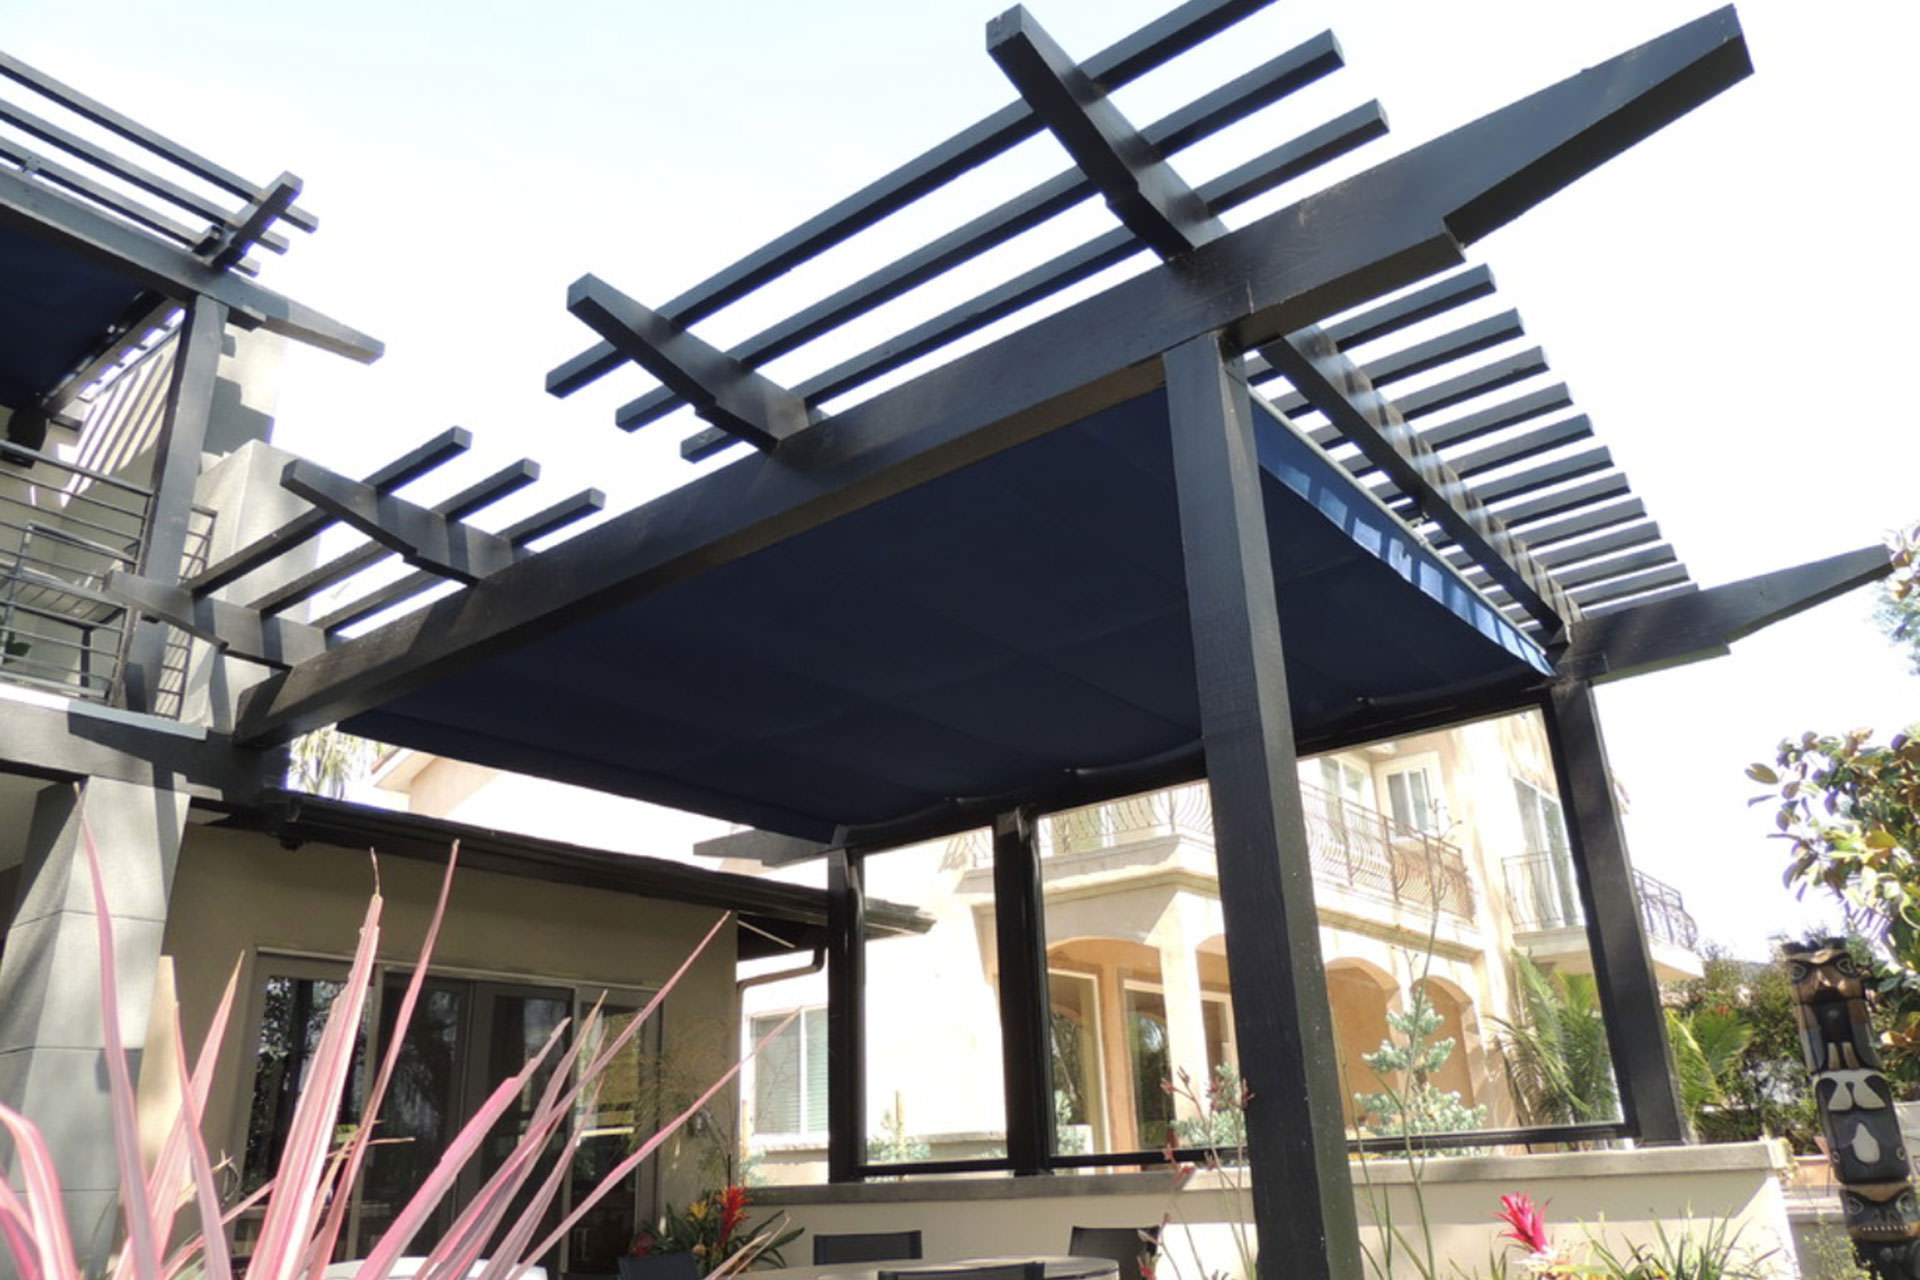 Pergolas or patio covers how to choose the right shade solution - Waterdichte pergola cover ...